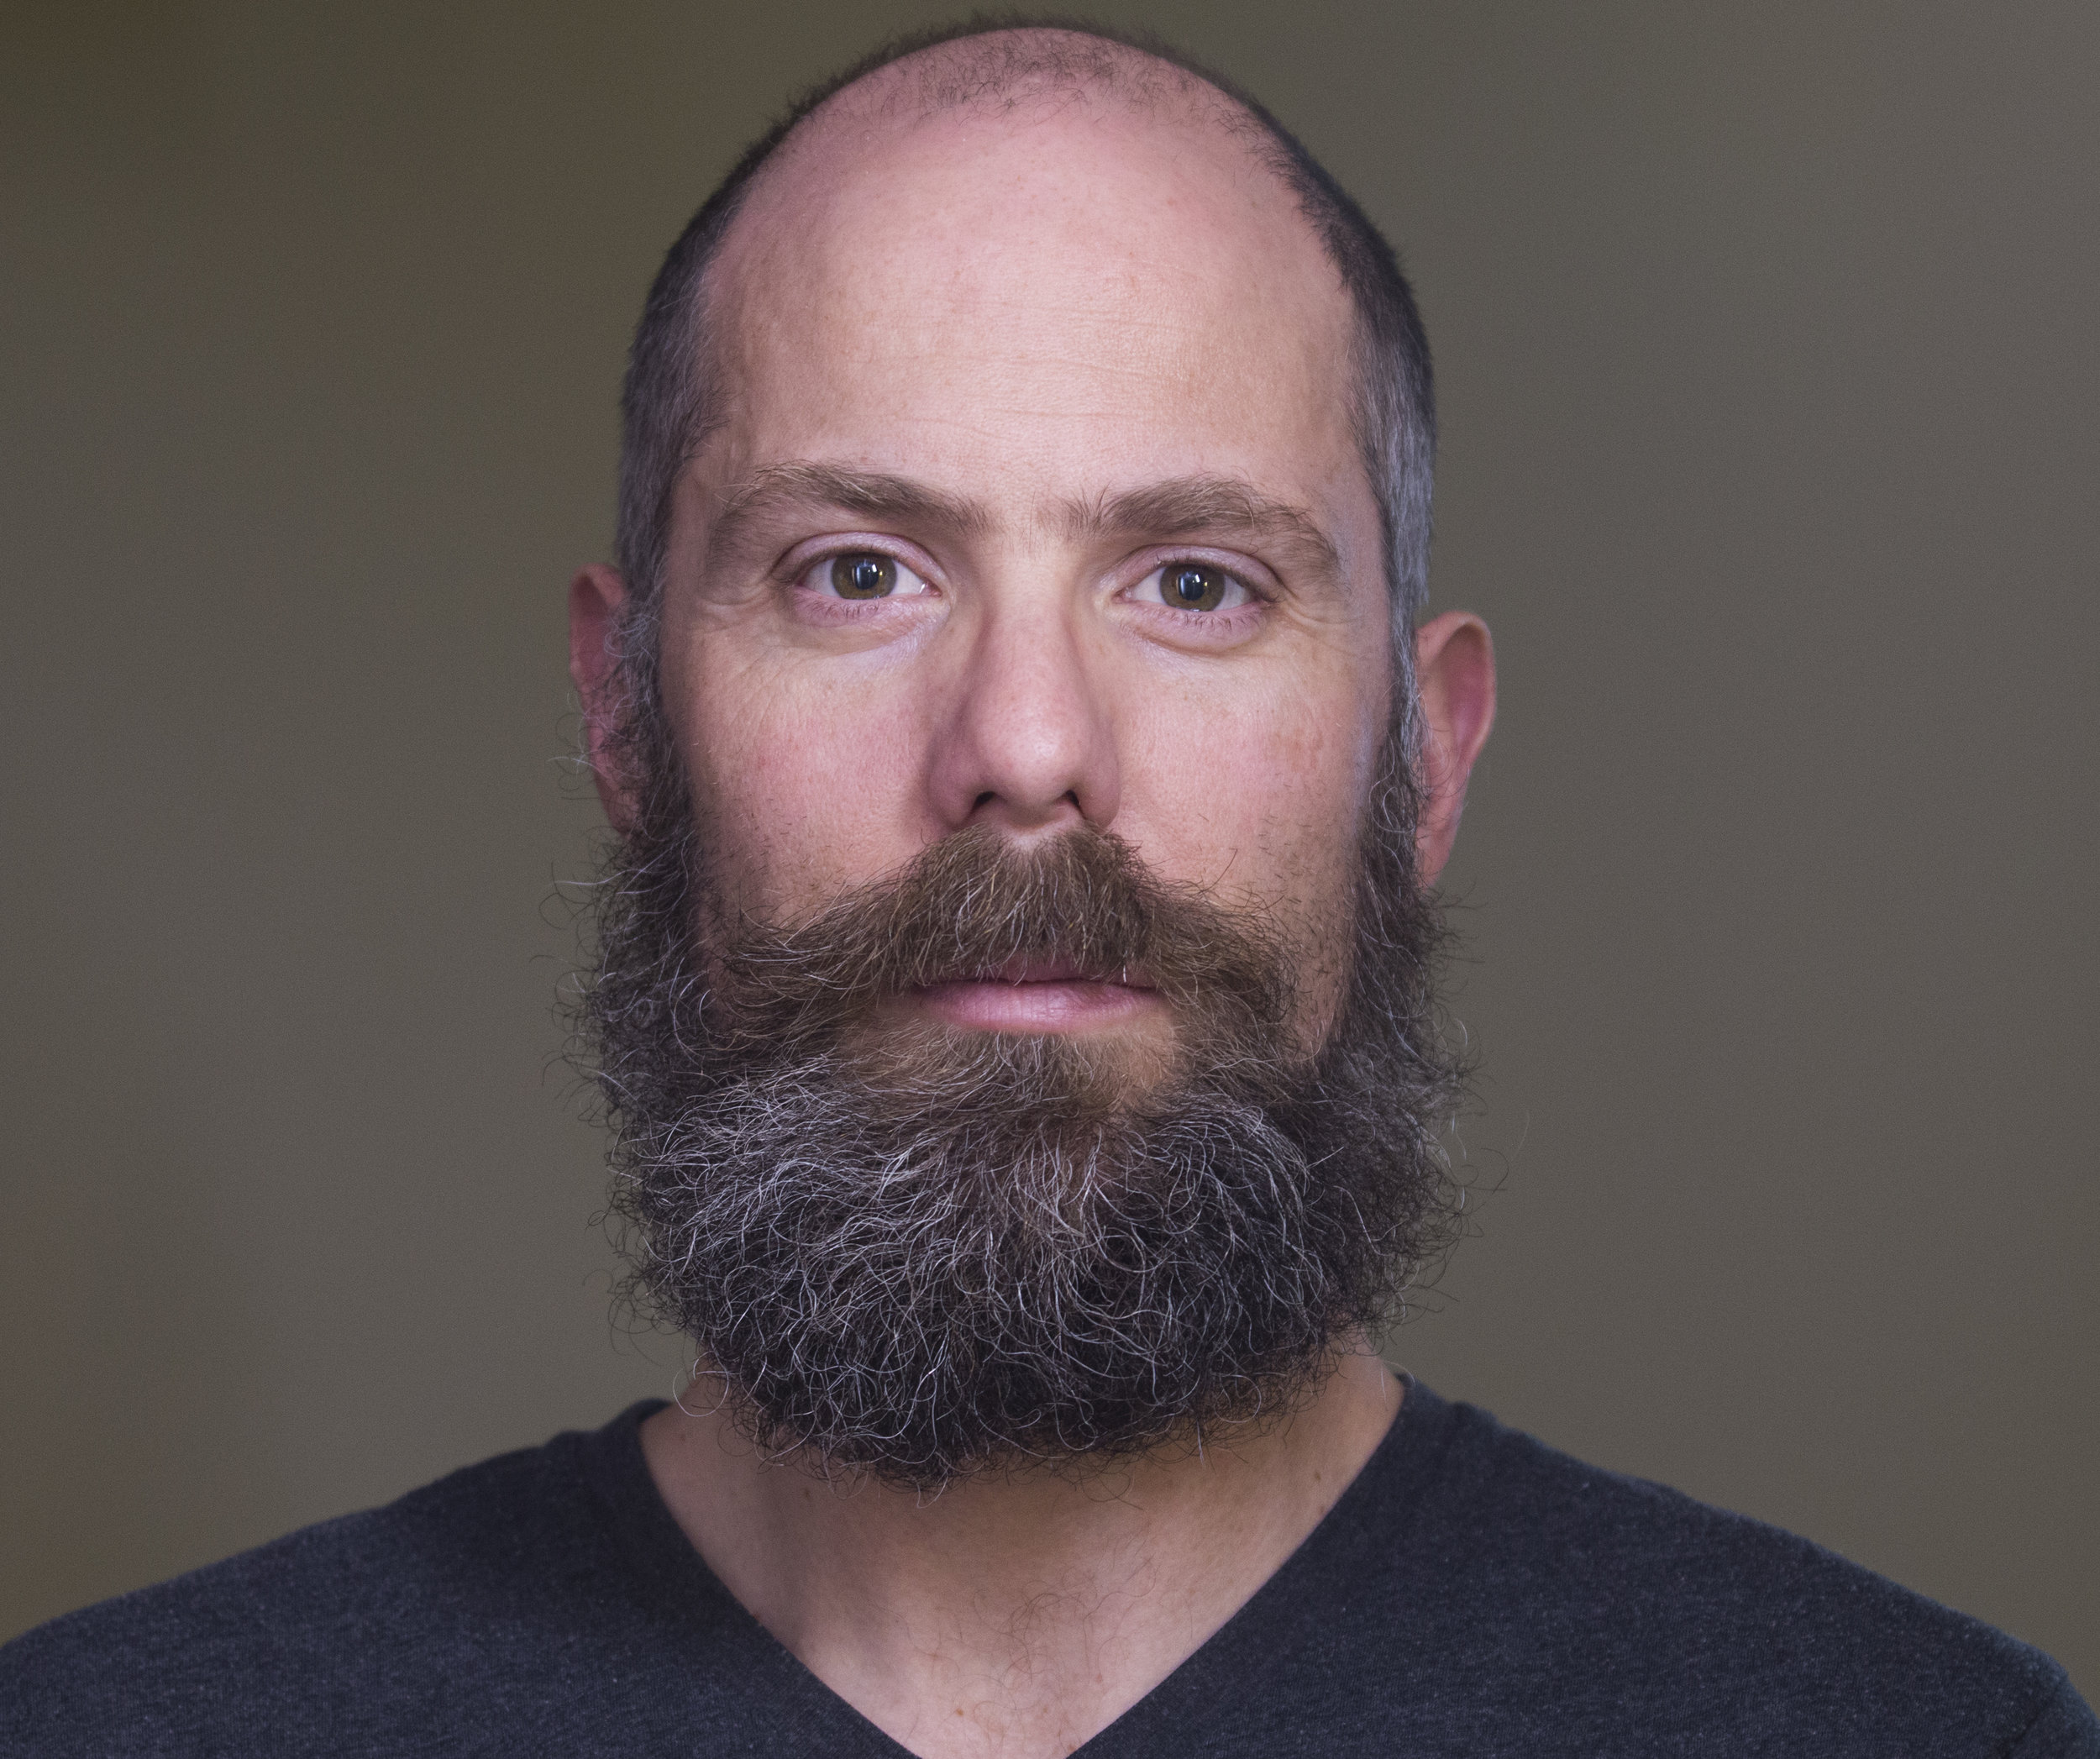 IAN KERR, CSC | INVENTOR - Ian is an Emmy award winning cinematographer and beard model.When he isn't shooting, he invents and designs stuff like the MultiTurret™.